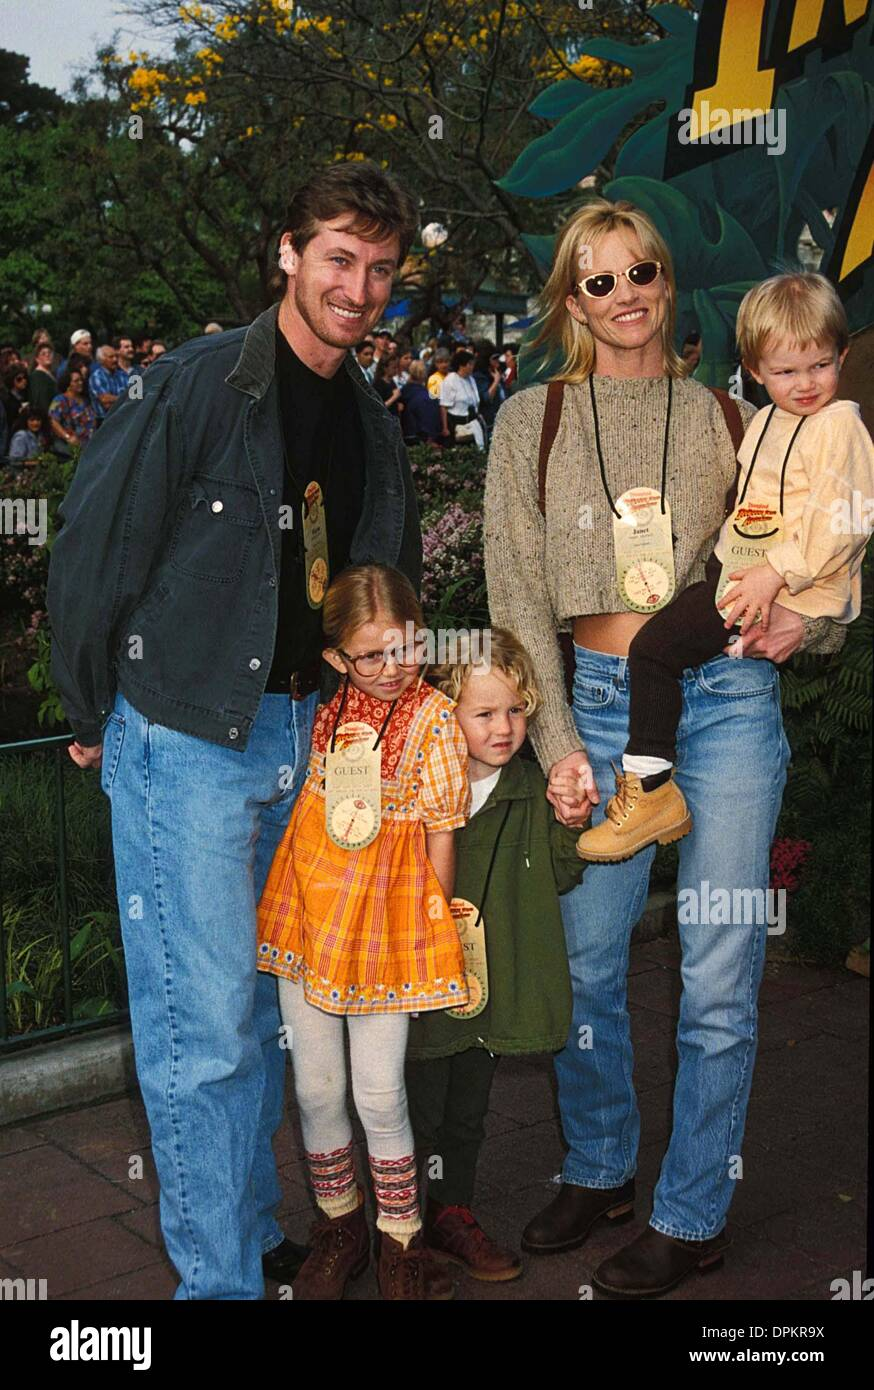 Feb. 14, 2006 - WAYNE GRETZKY WITH JANET JONES WITH THEIR KIDS AT NEW INDIANA JONES ADVENTURE RIDE.CREDIT BY DAVE Stock Photo